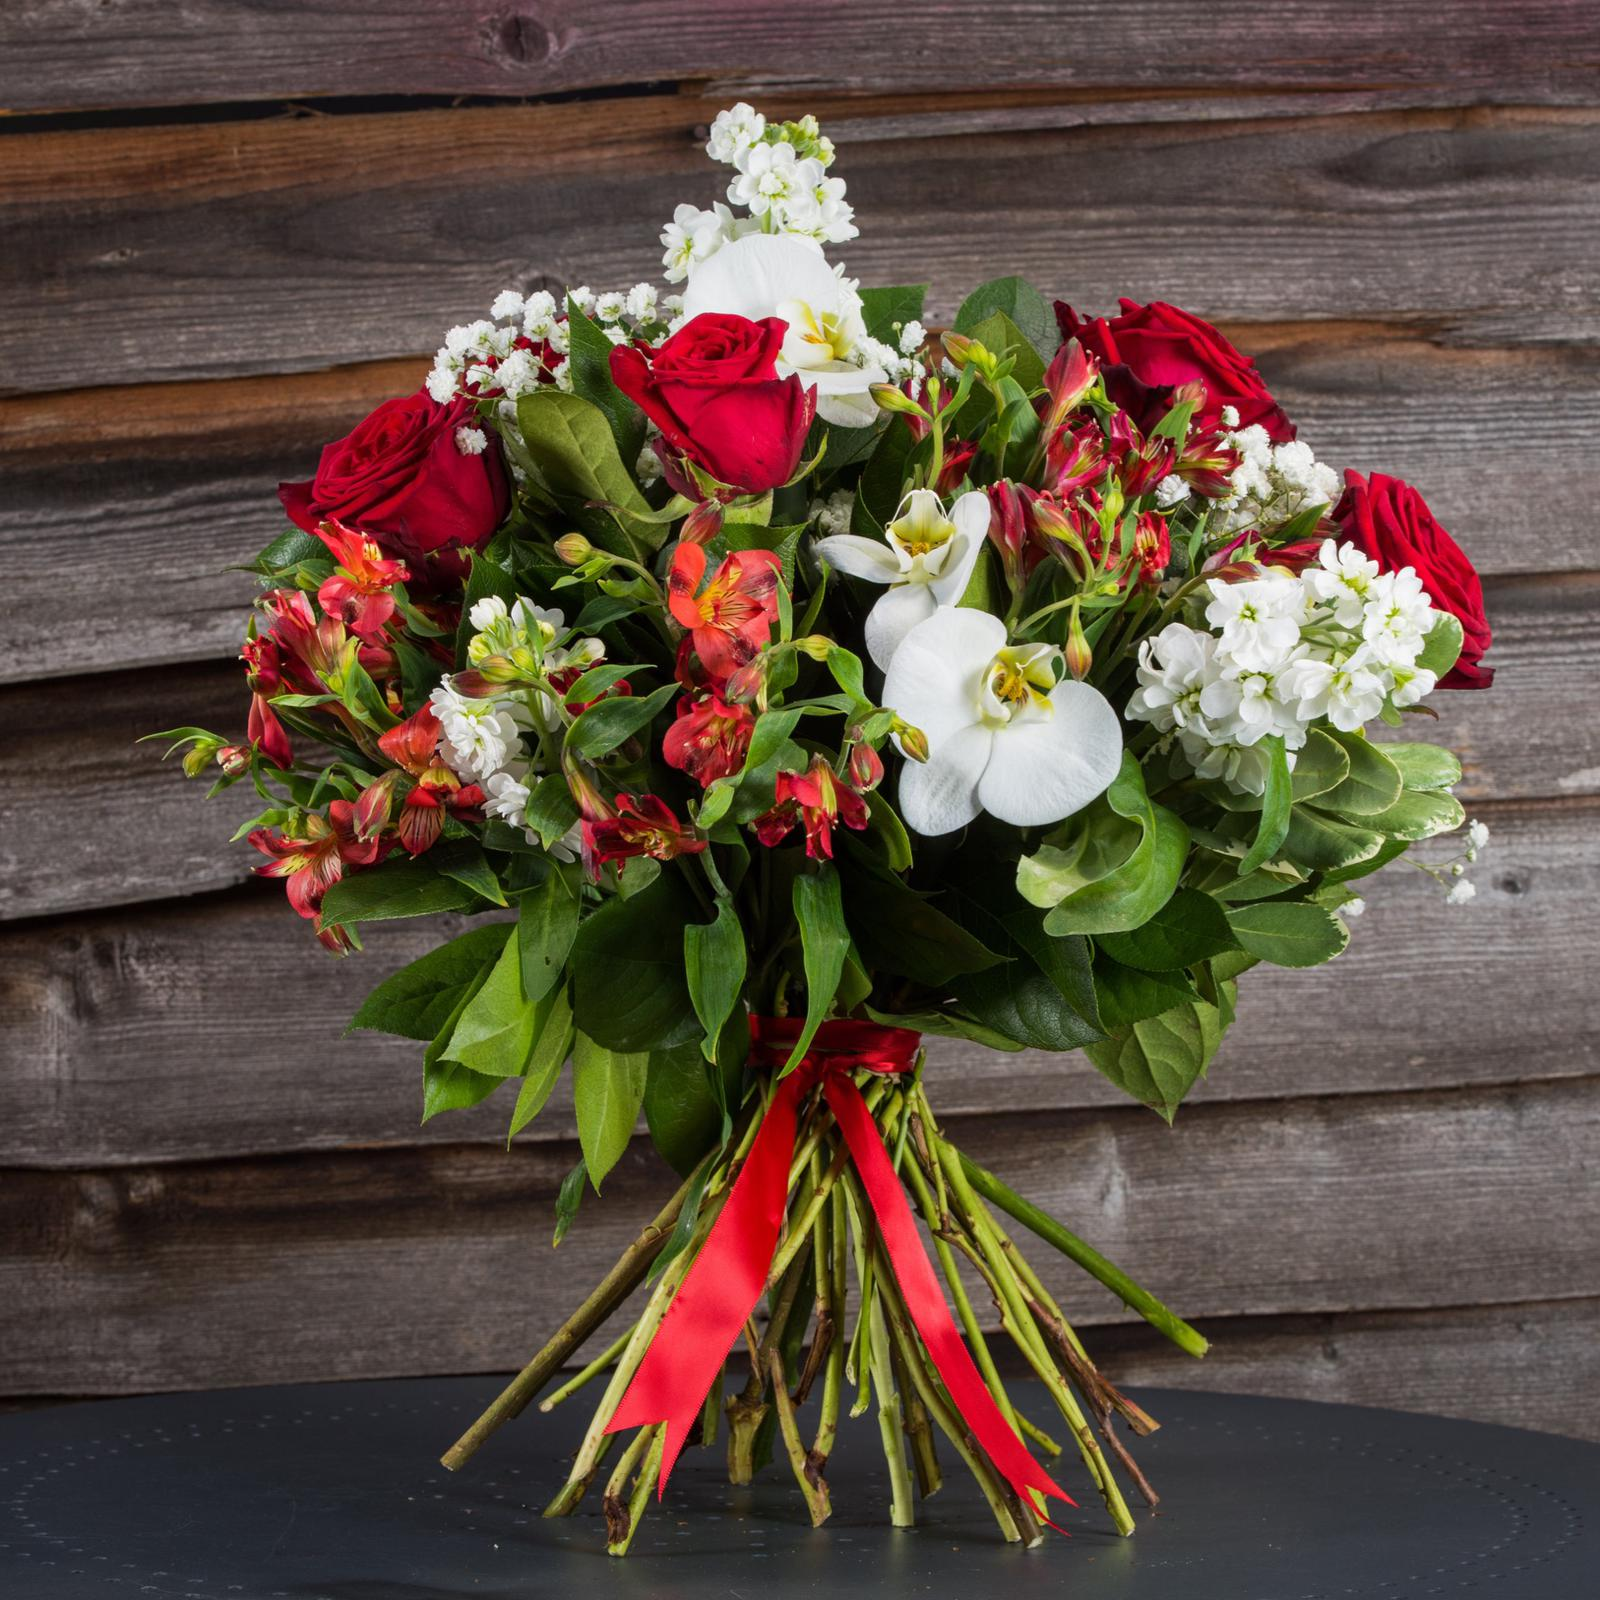 Discover the joy of fresh flowers